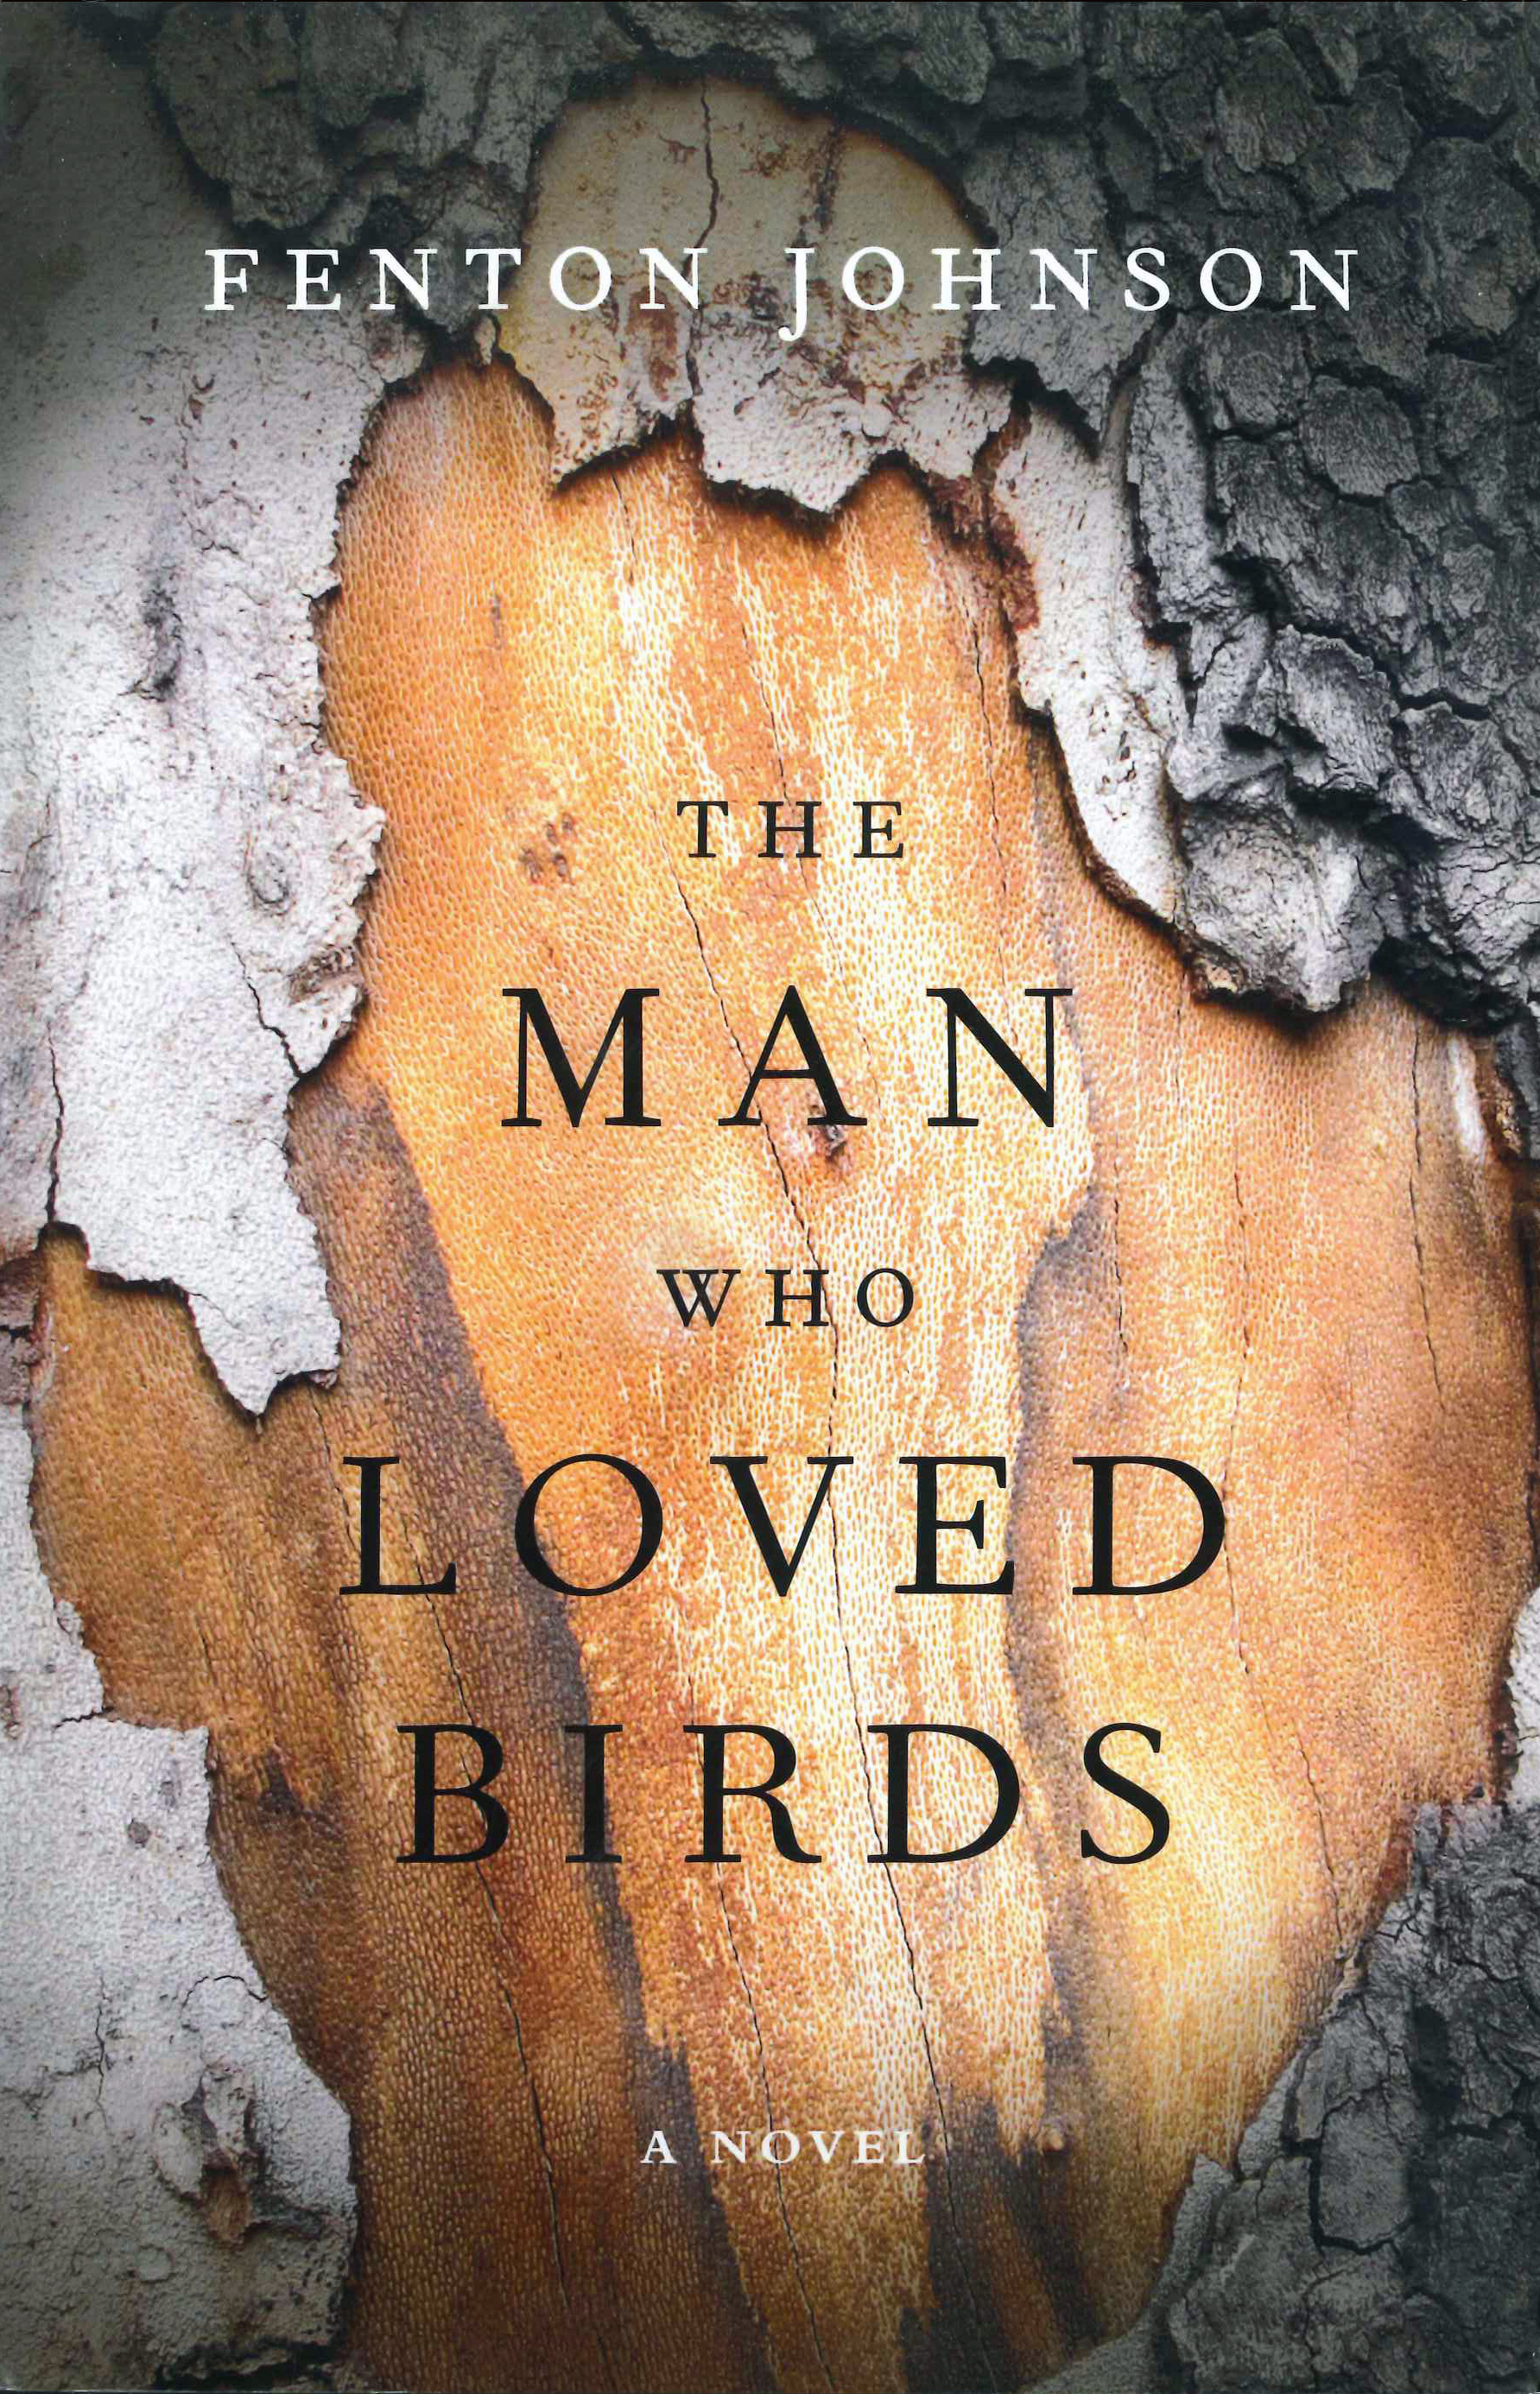 The Man Who Loved Birds by Fenton Johnson